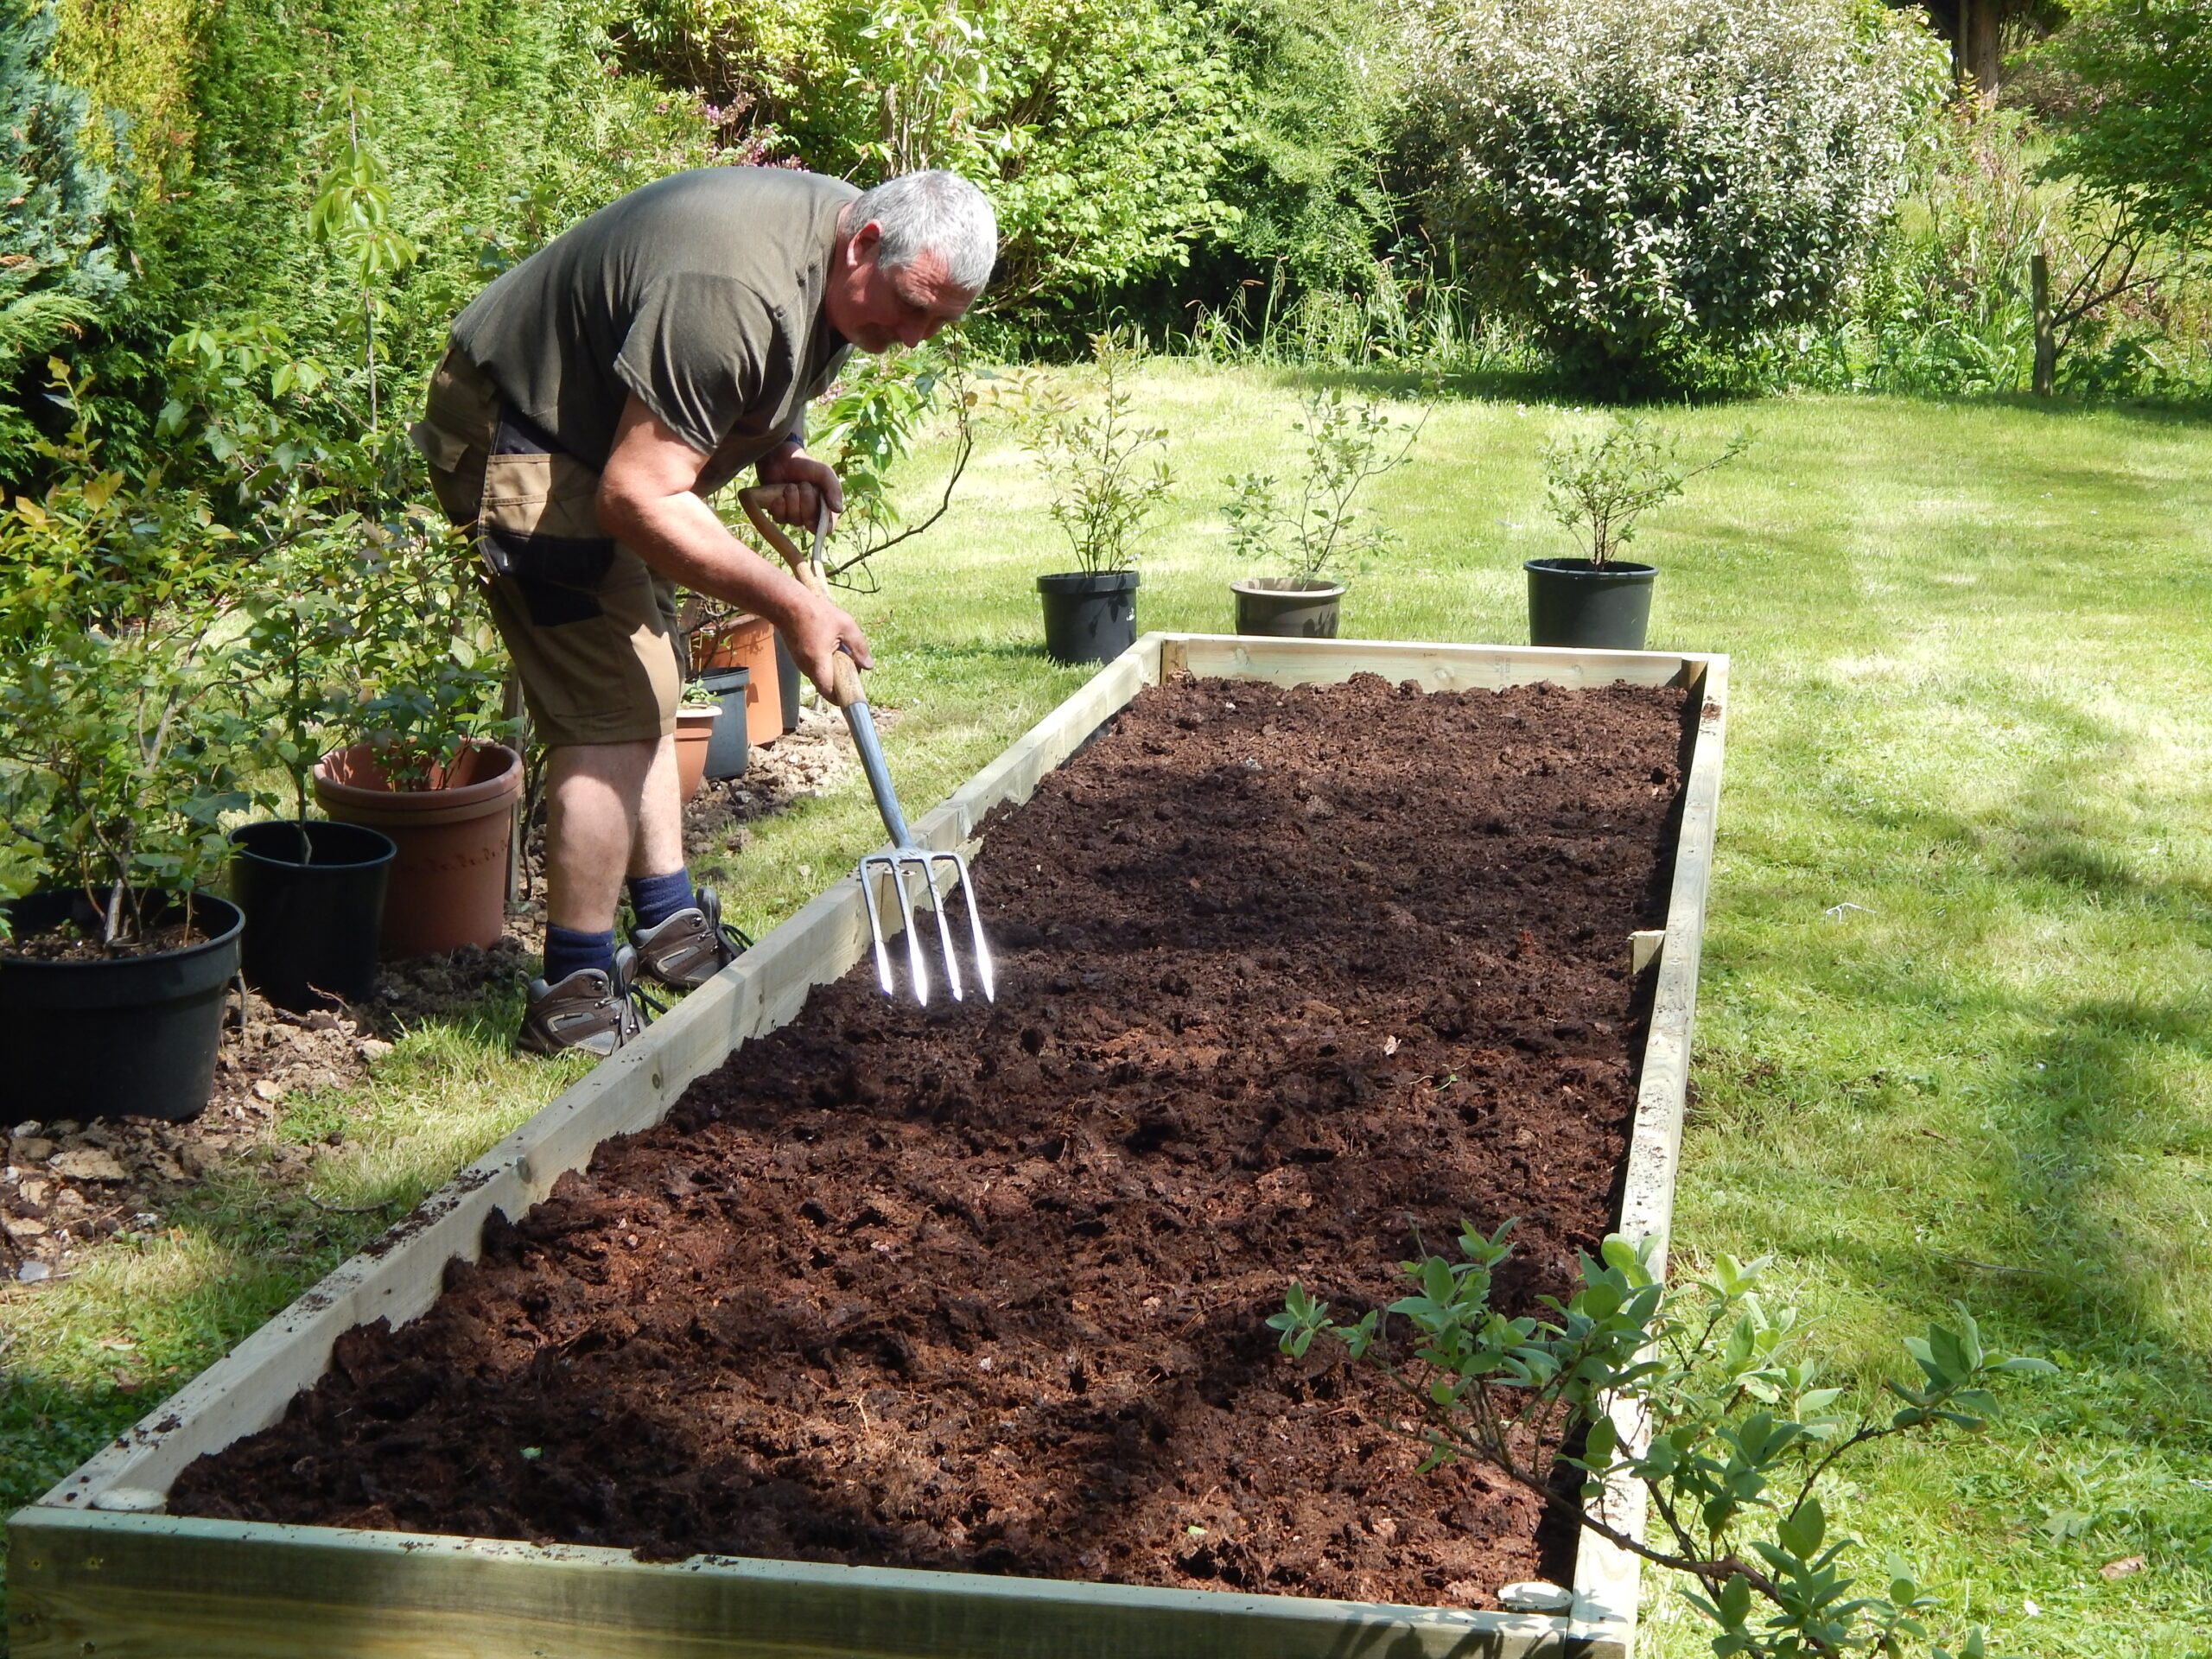 One of the talented gardeners from the Rudgwick Gardens team hard at work preparing a new flower bed.